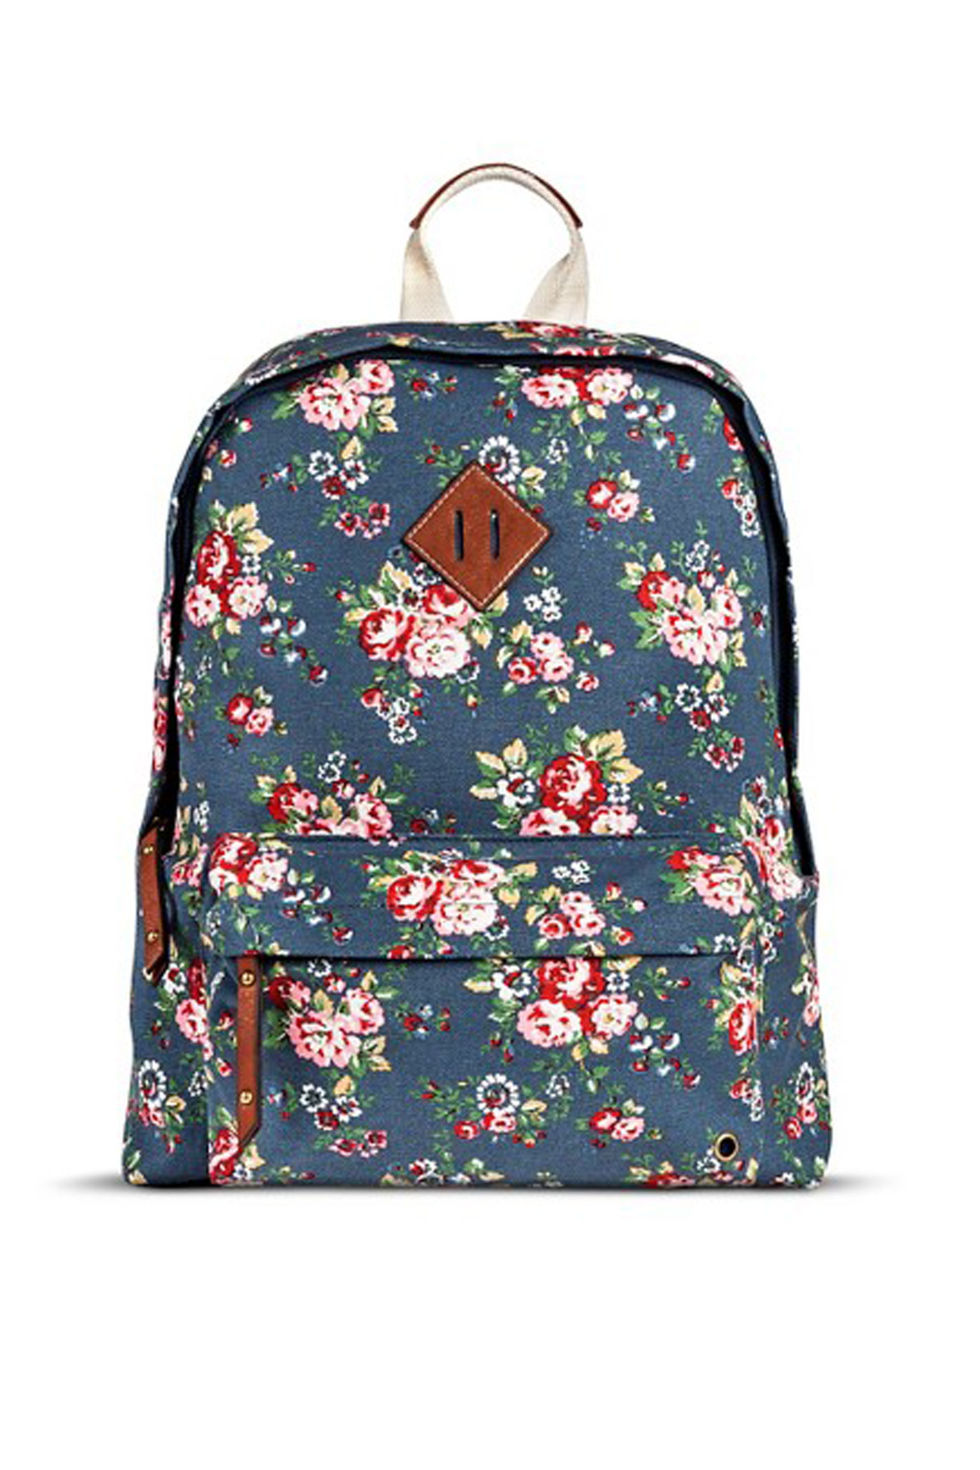 Backpacks For Girls In High School s5QGZbEi